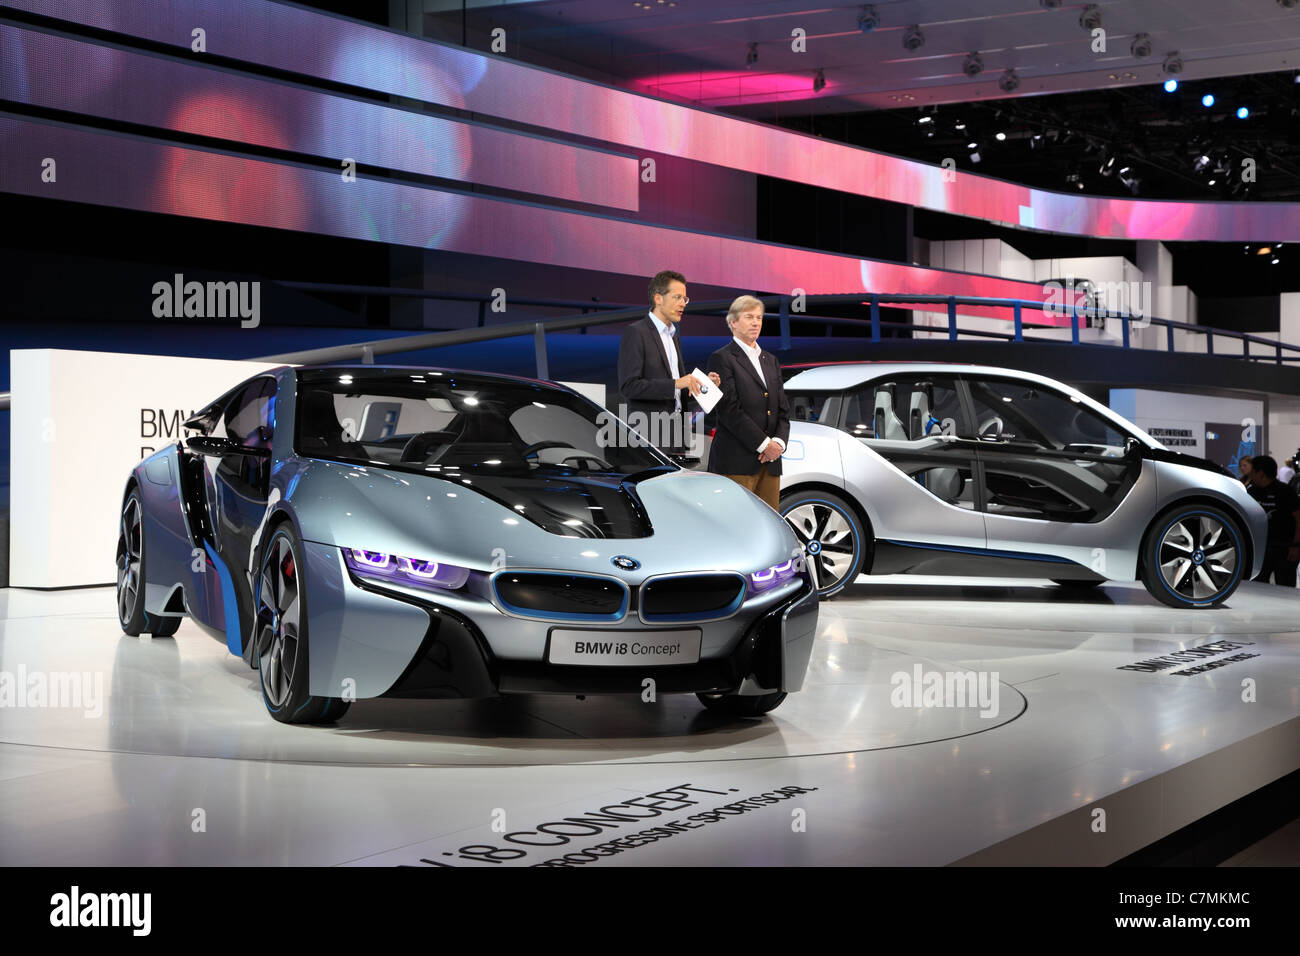 BMW electric concept cars i8 and i3 at the 64th IAA (Internationale Automobil Ausstellung) Stock Photo